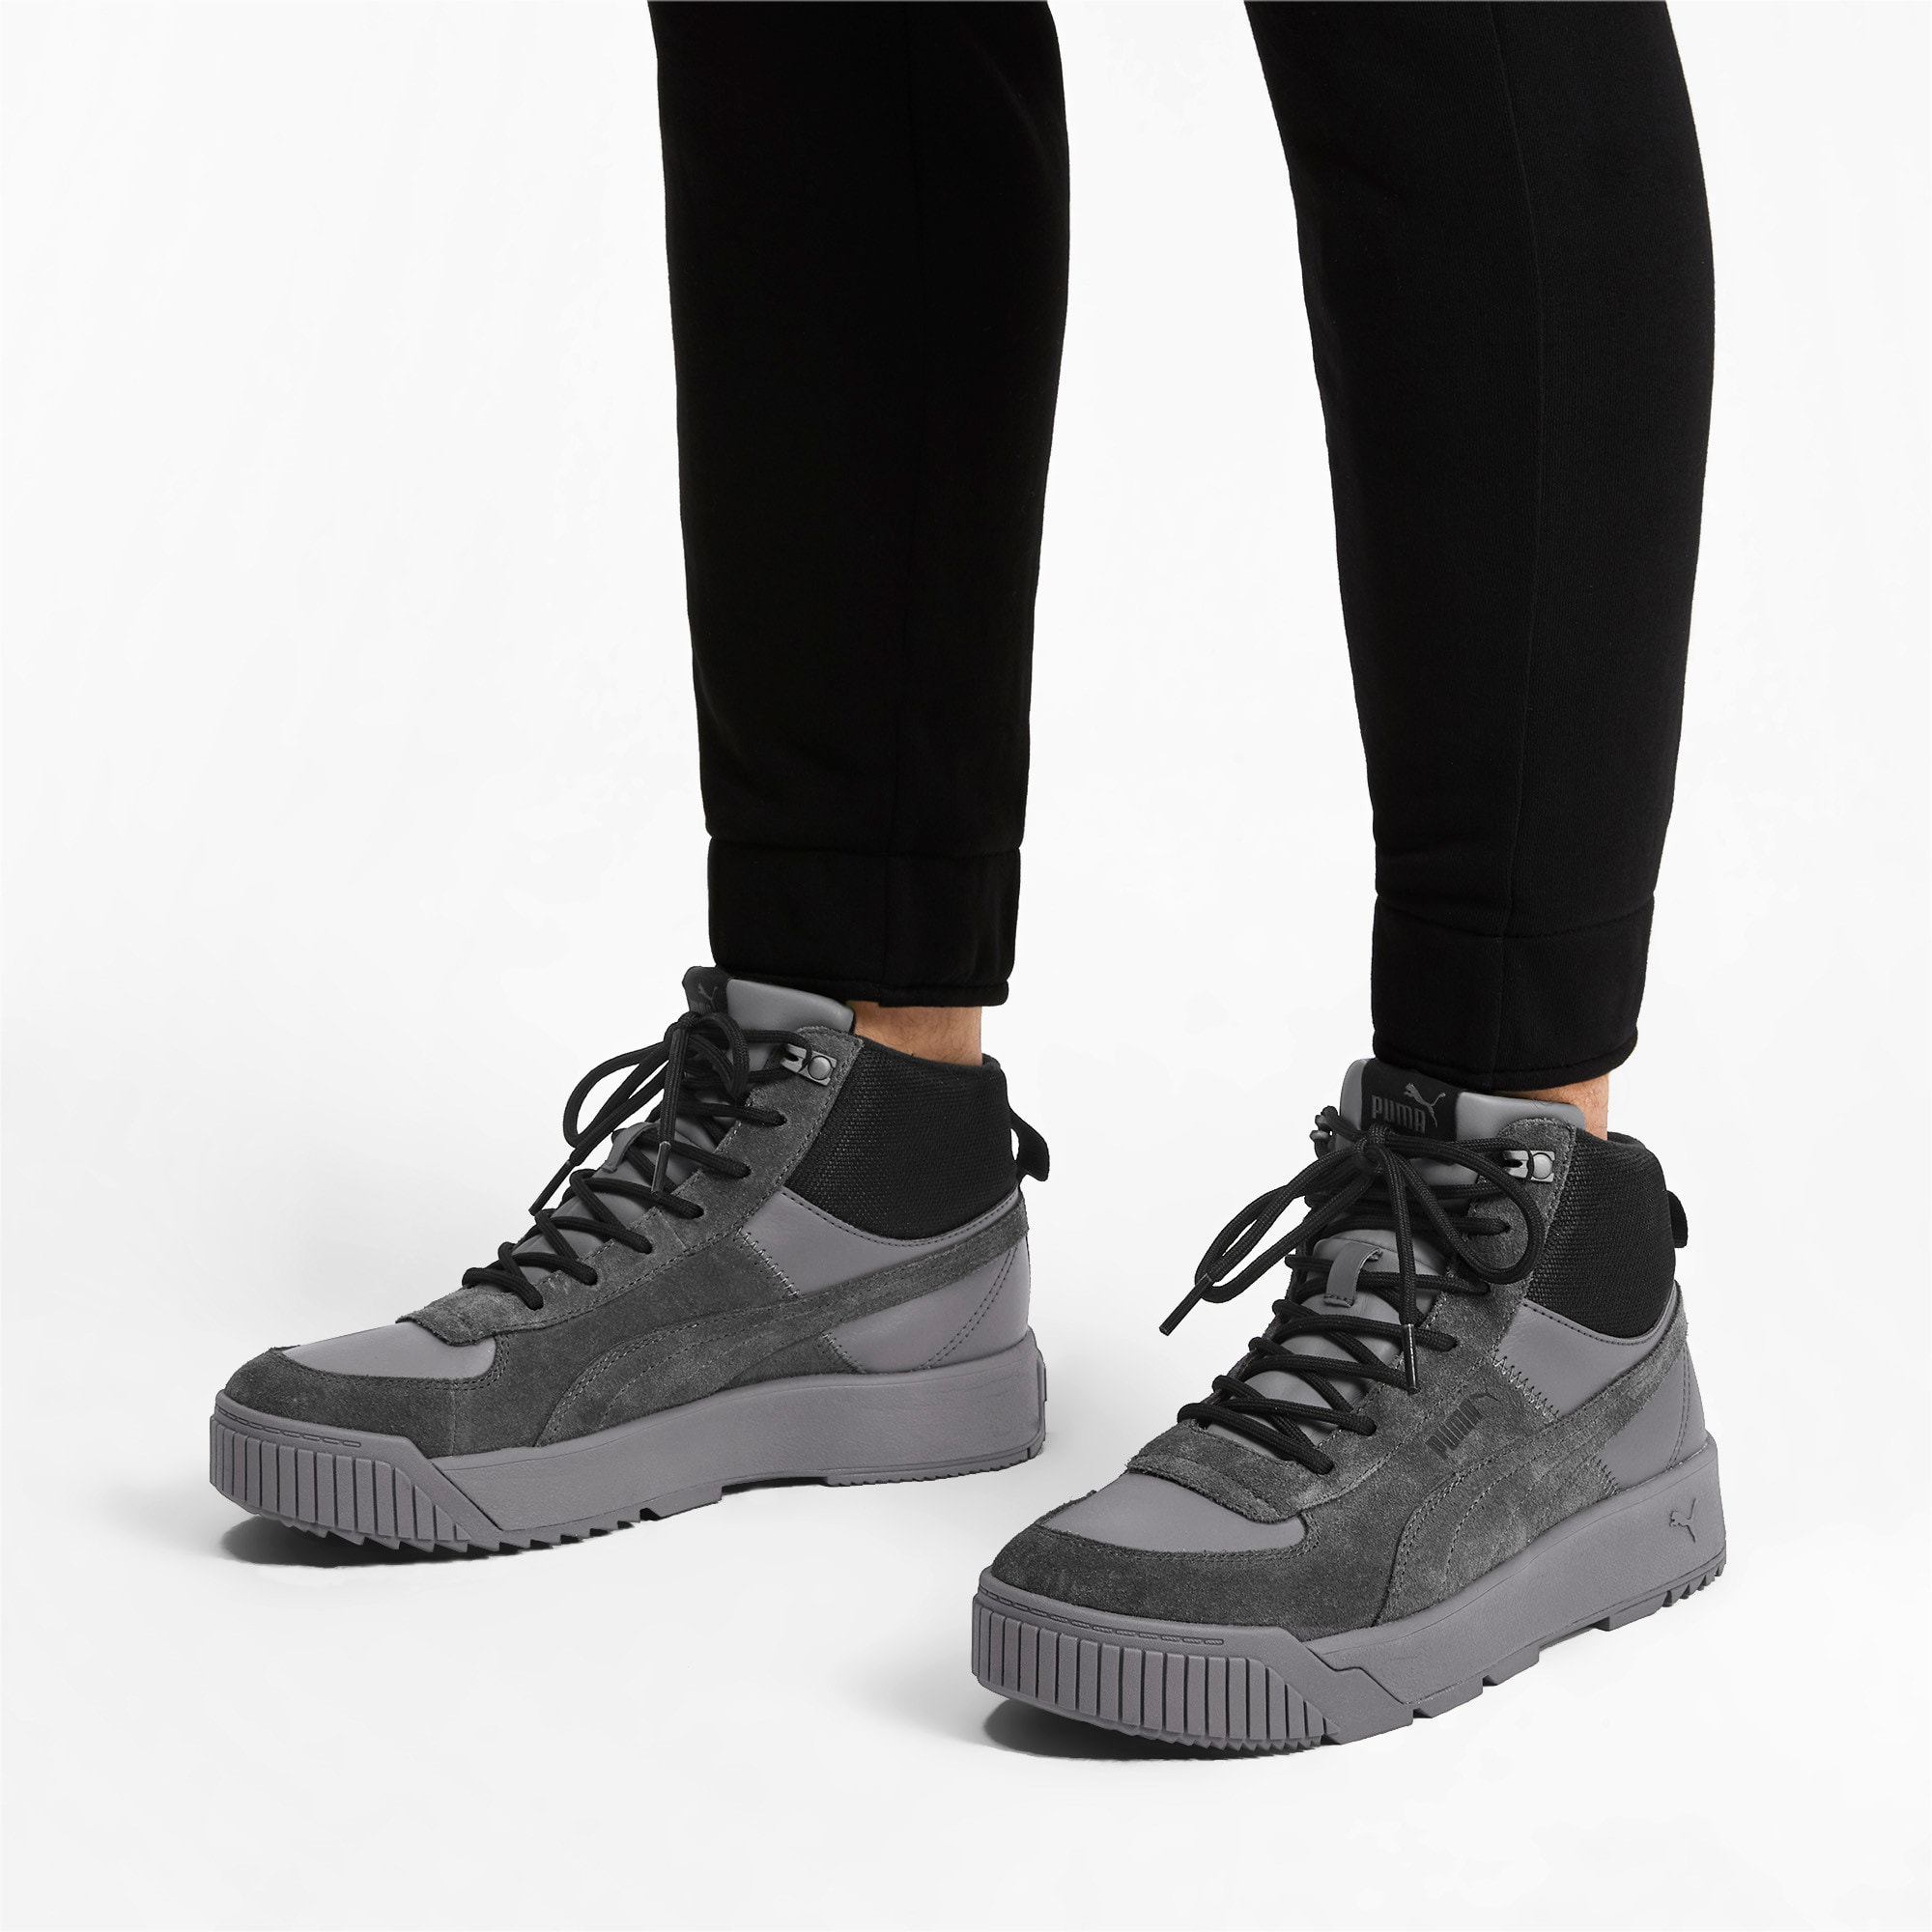 Thumbnail 2 of Tarrenz Sneaker Boots, CASTLEROCK-Puma Black, medium